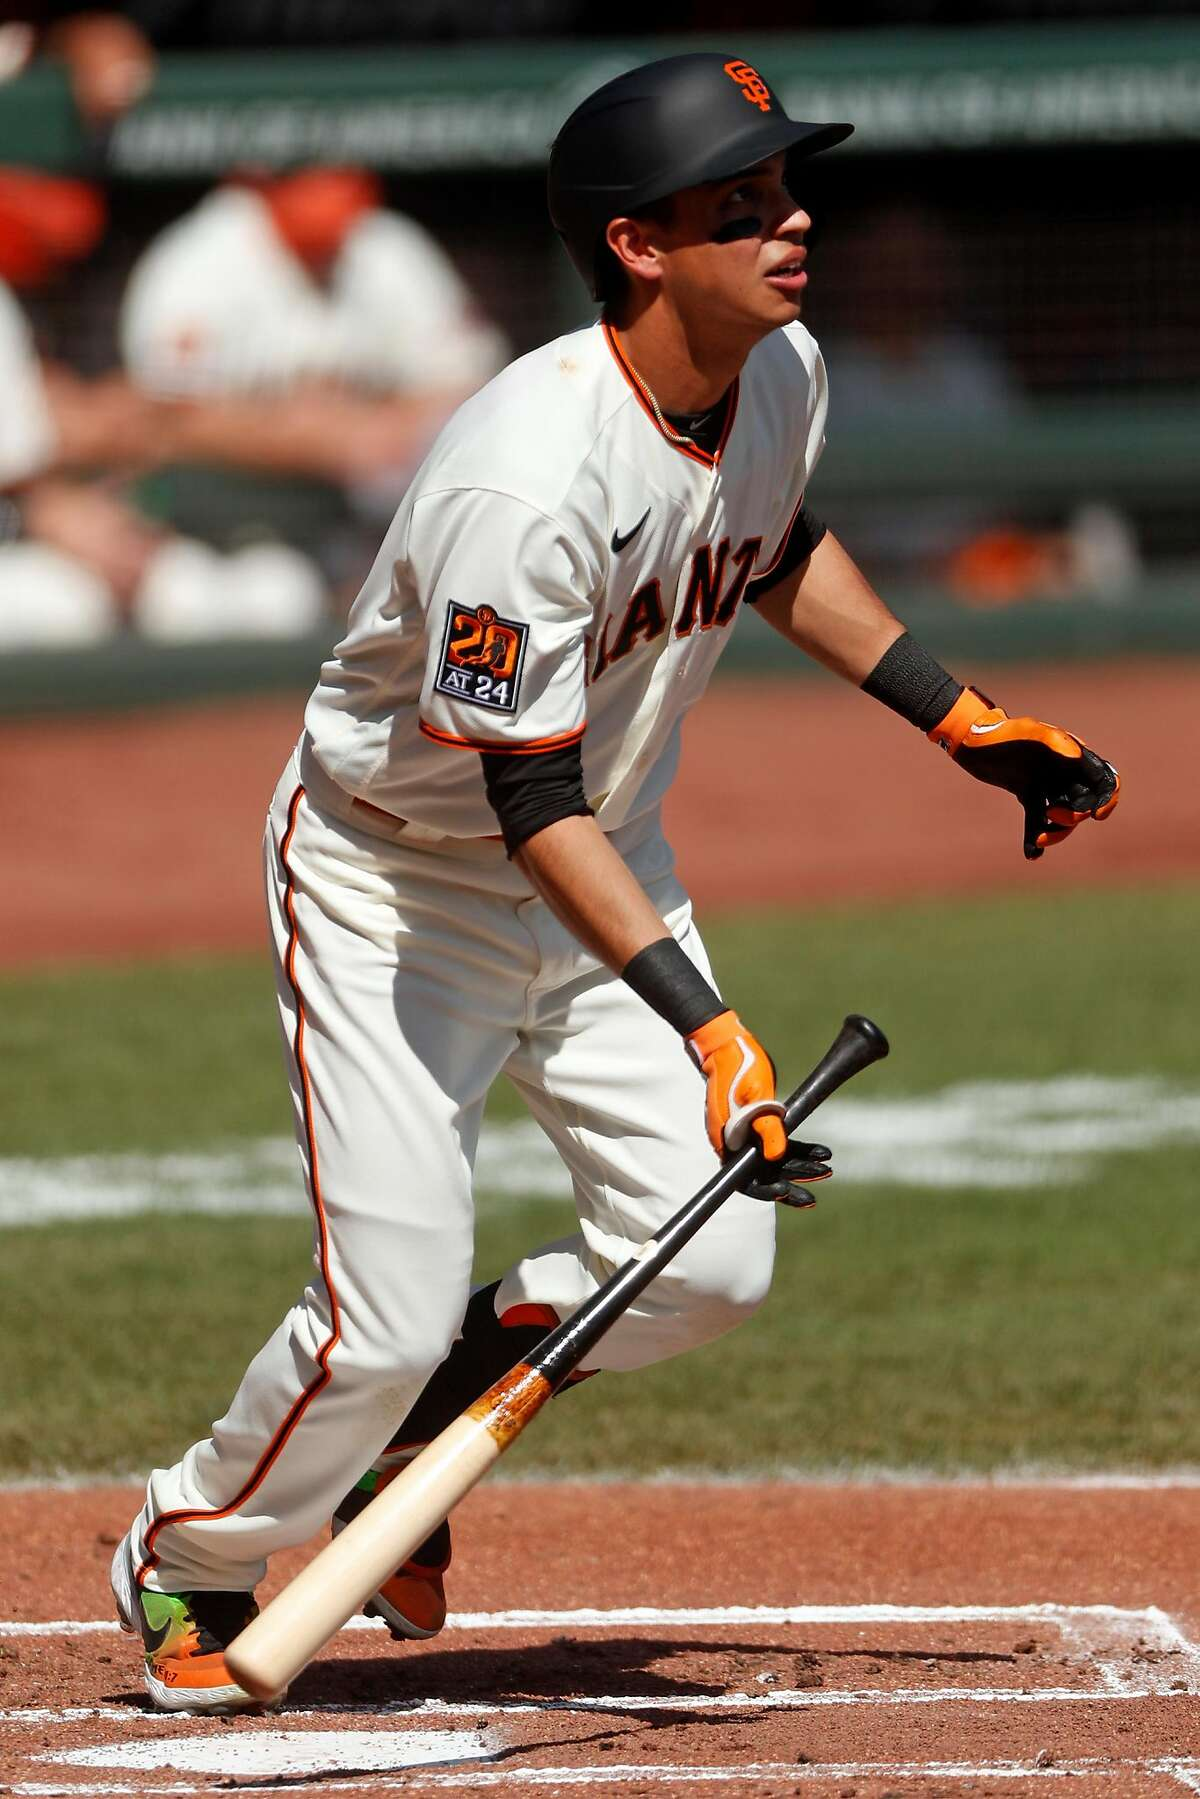 San Francisco Giants' Mauricio Dubon watches his solo home run in 2nd inning against San Diego Padres during MLB game at Oracle Park in San Francisco, Calif., on Sunday, September 27, 2020.